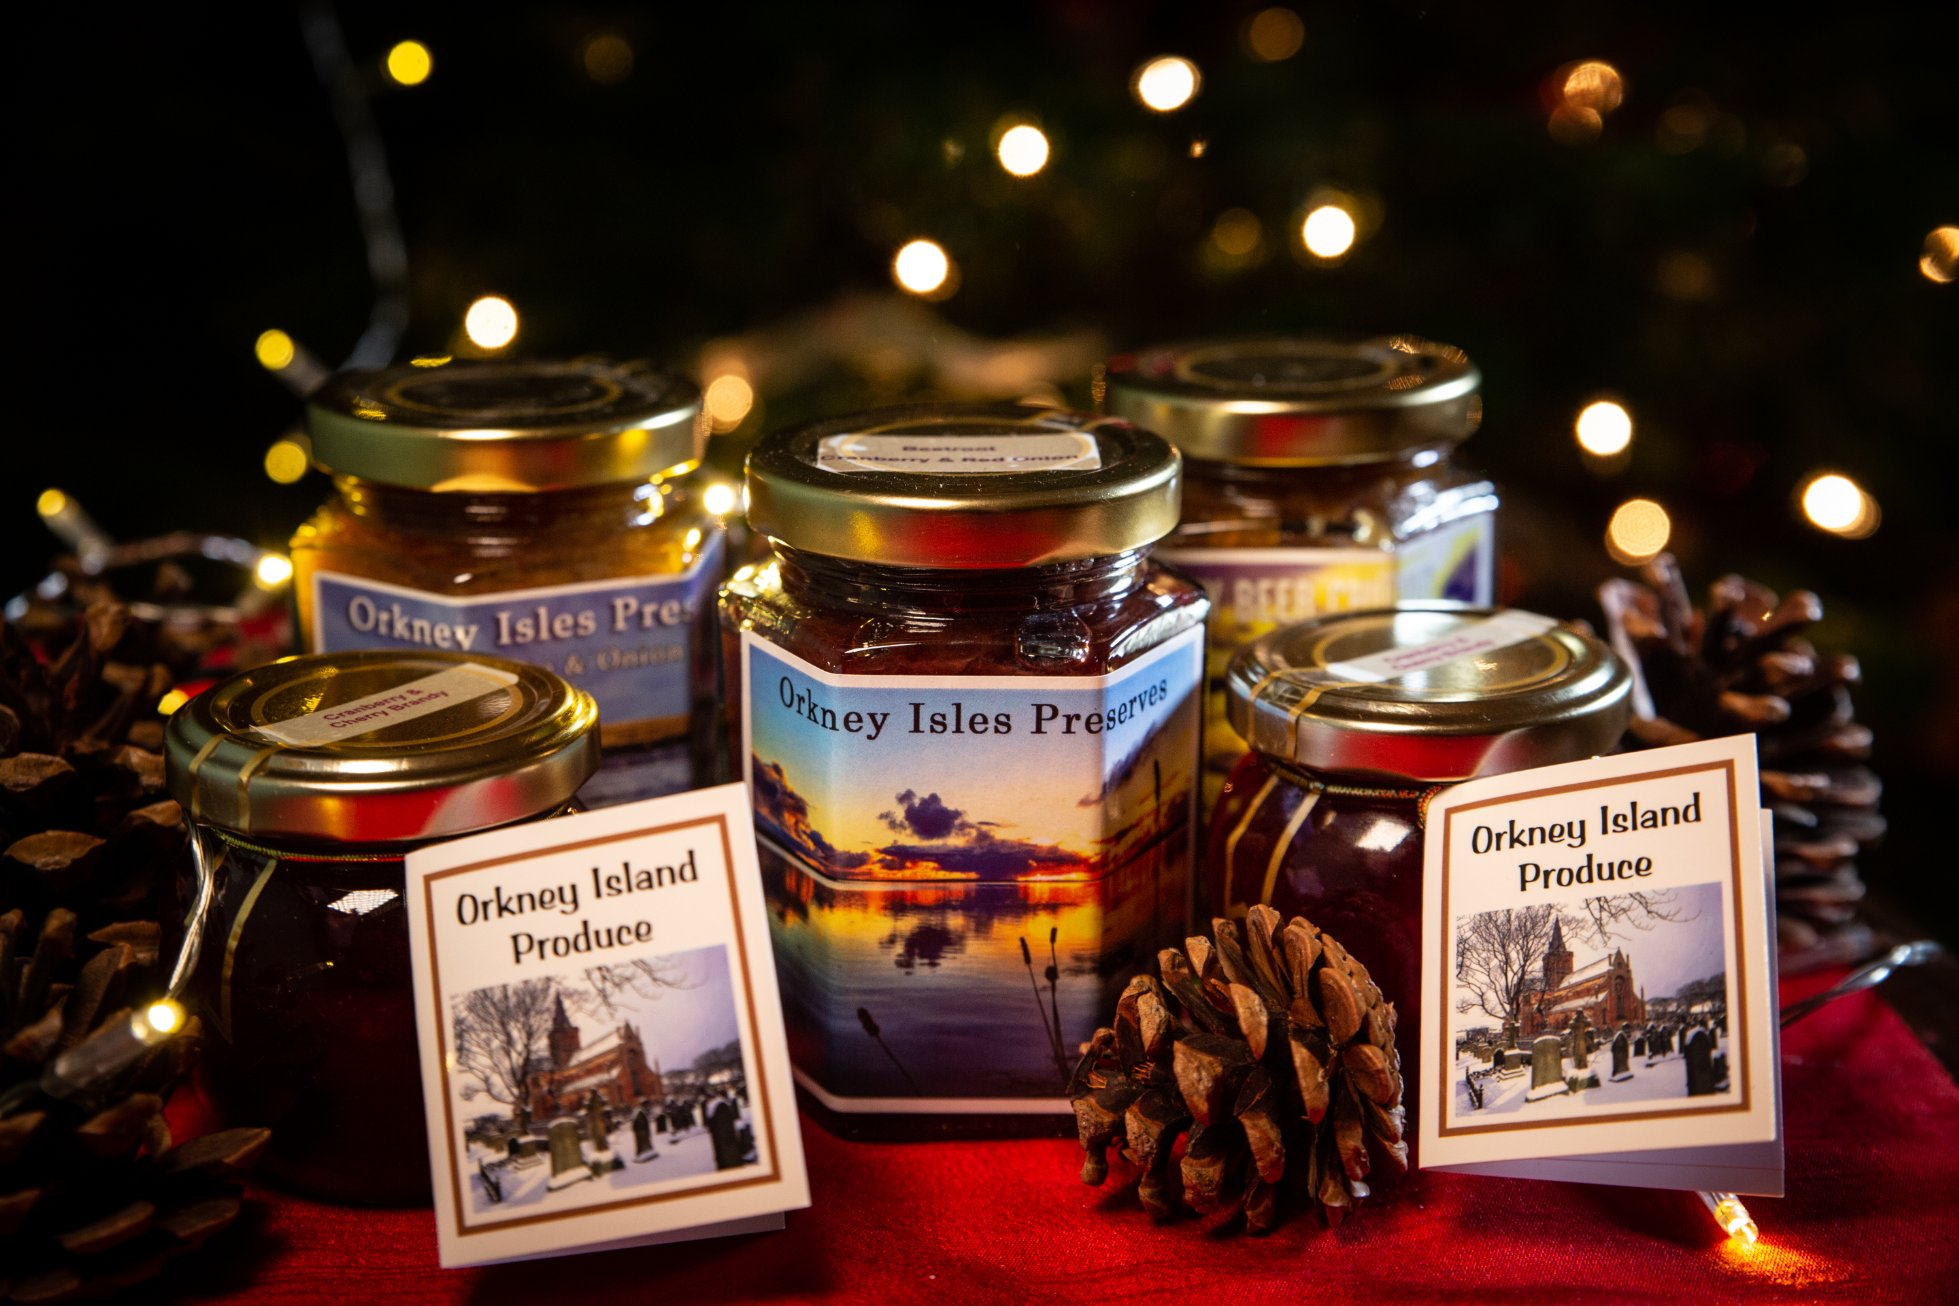 Selection of seasonal jams and chutneys from Orkney Isles Preserves